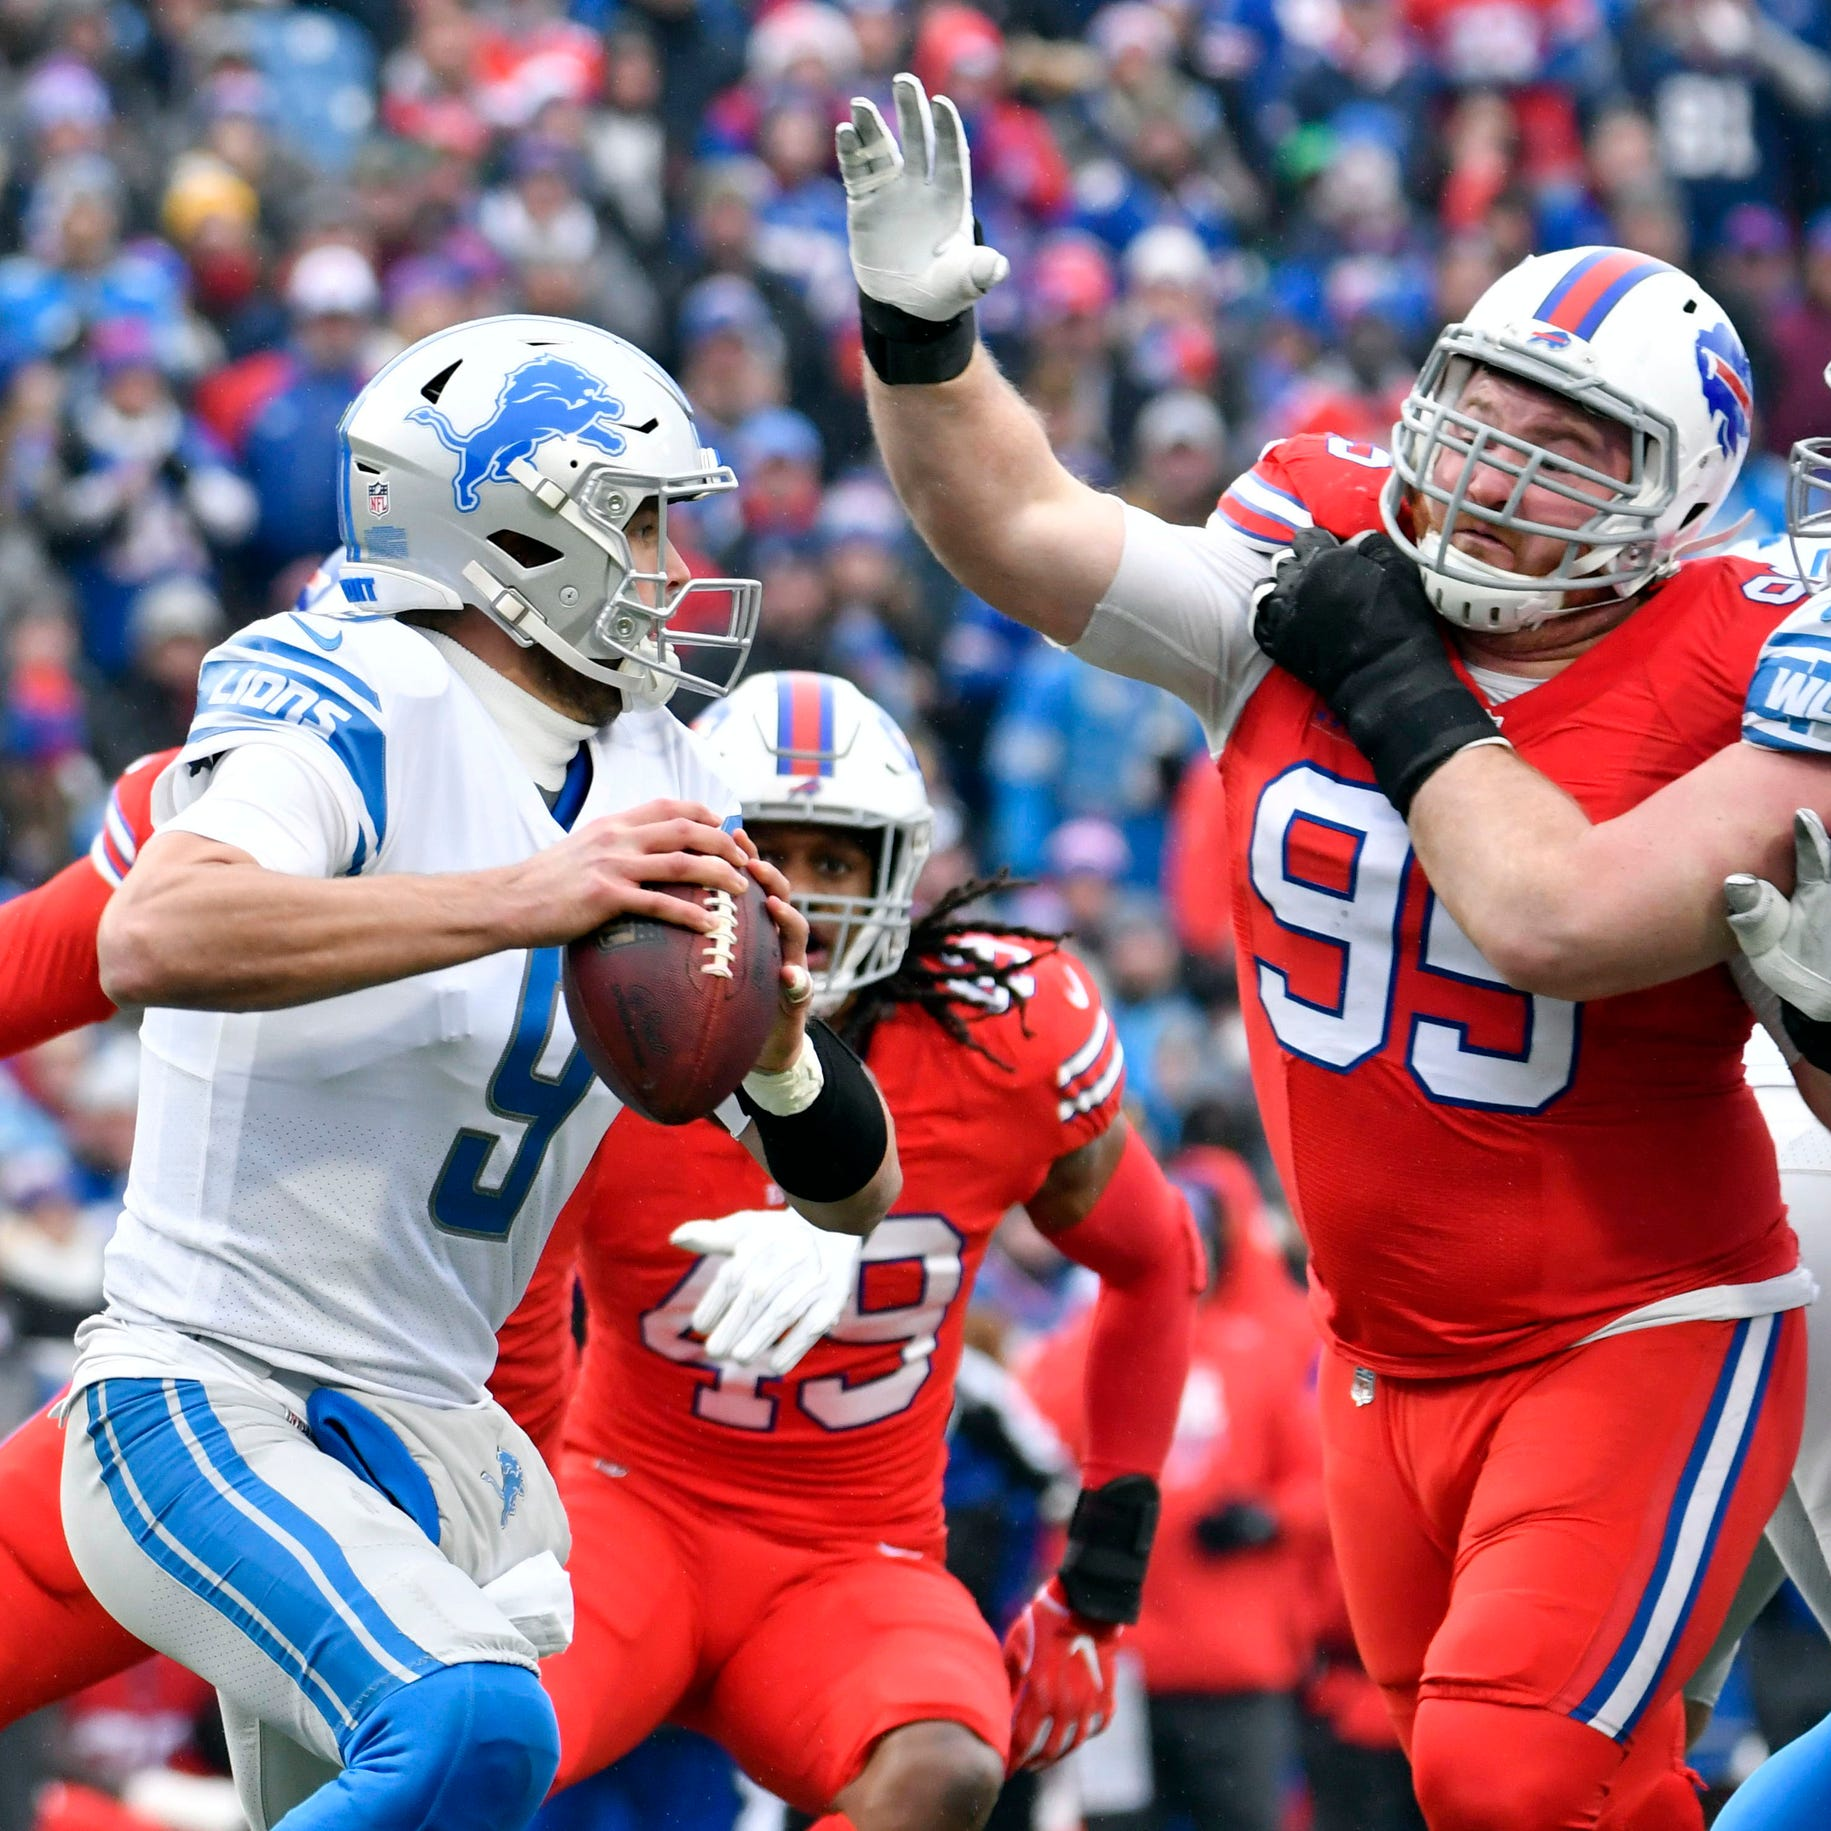 Detroit Lions fans say goodbye to season with two games left